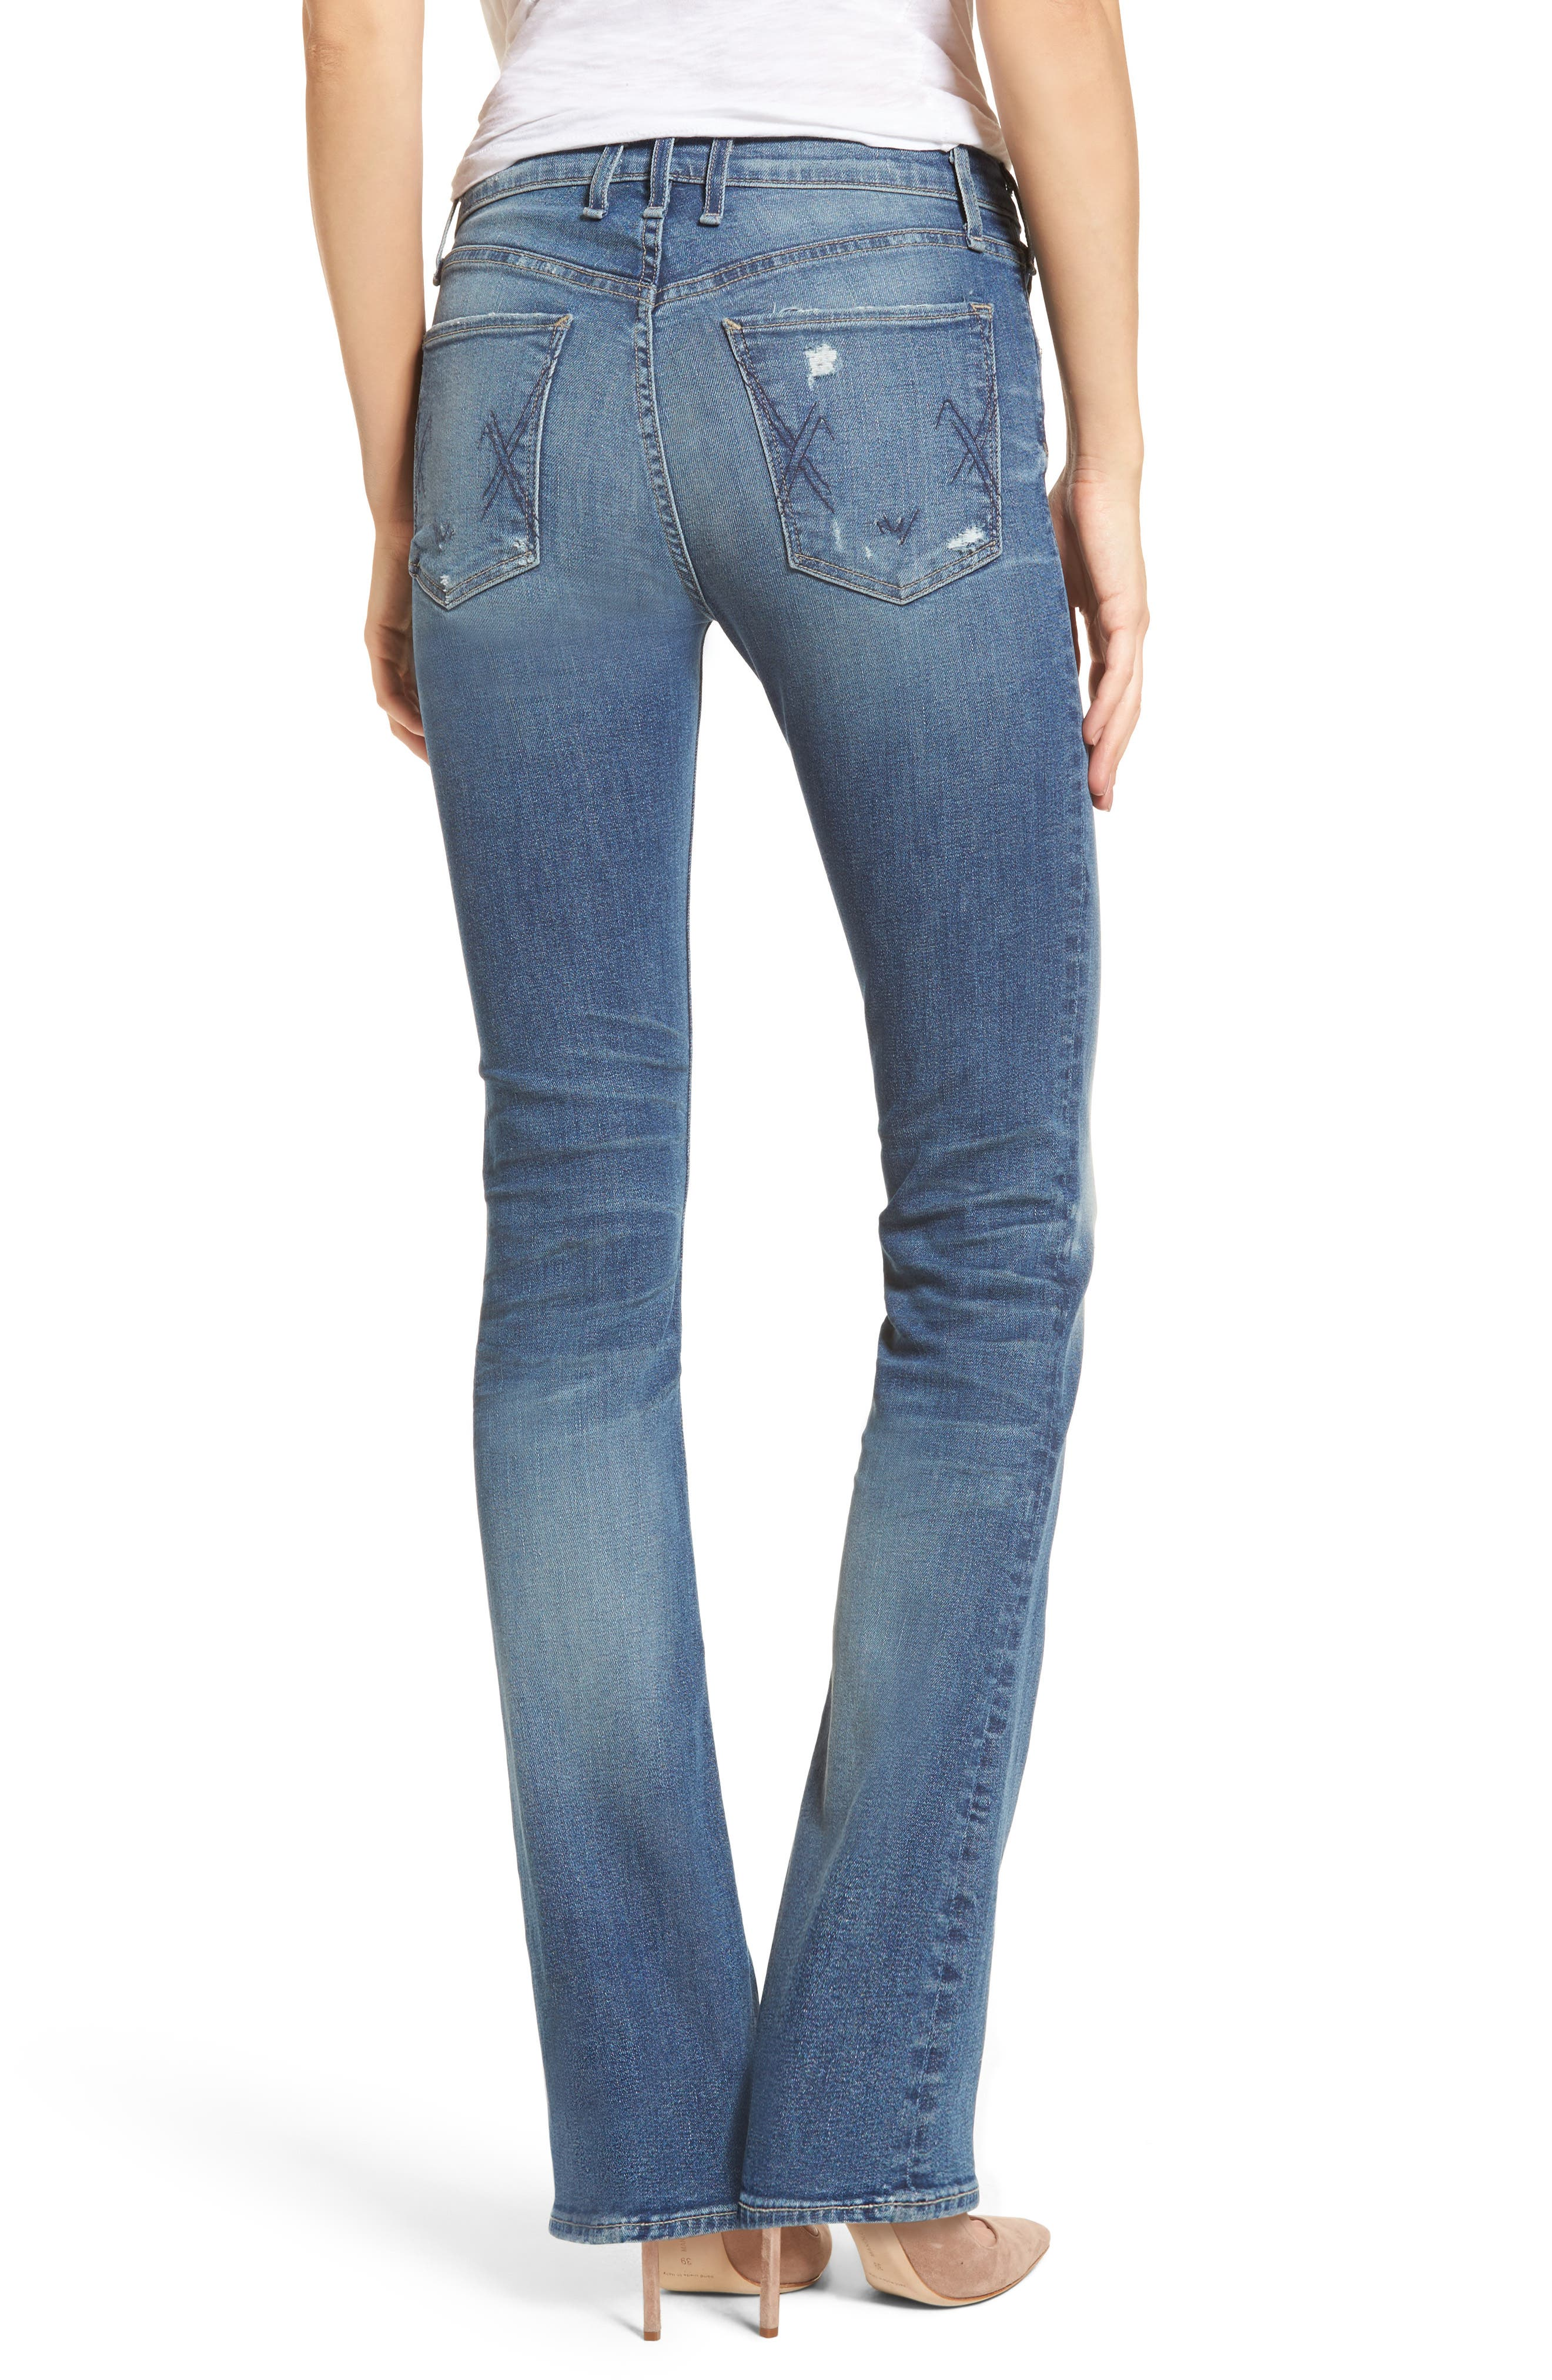 Gainsbourg High Waist Bootcut Jeans,                             Alternate thumbnail 2, color,                             Excuse Me Sir